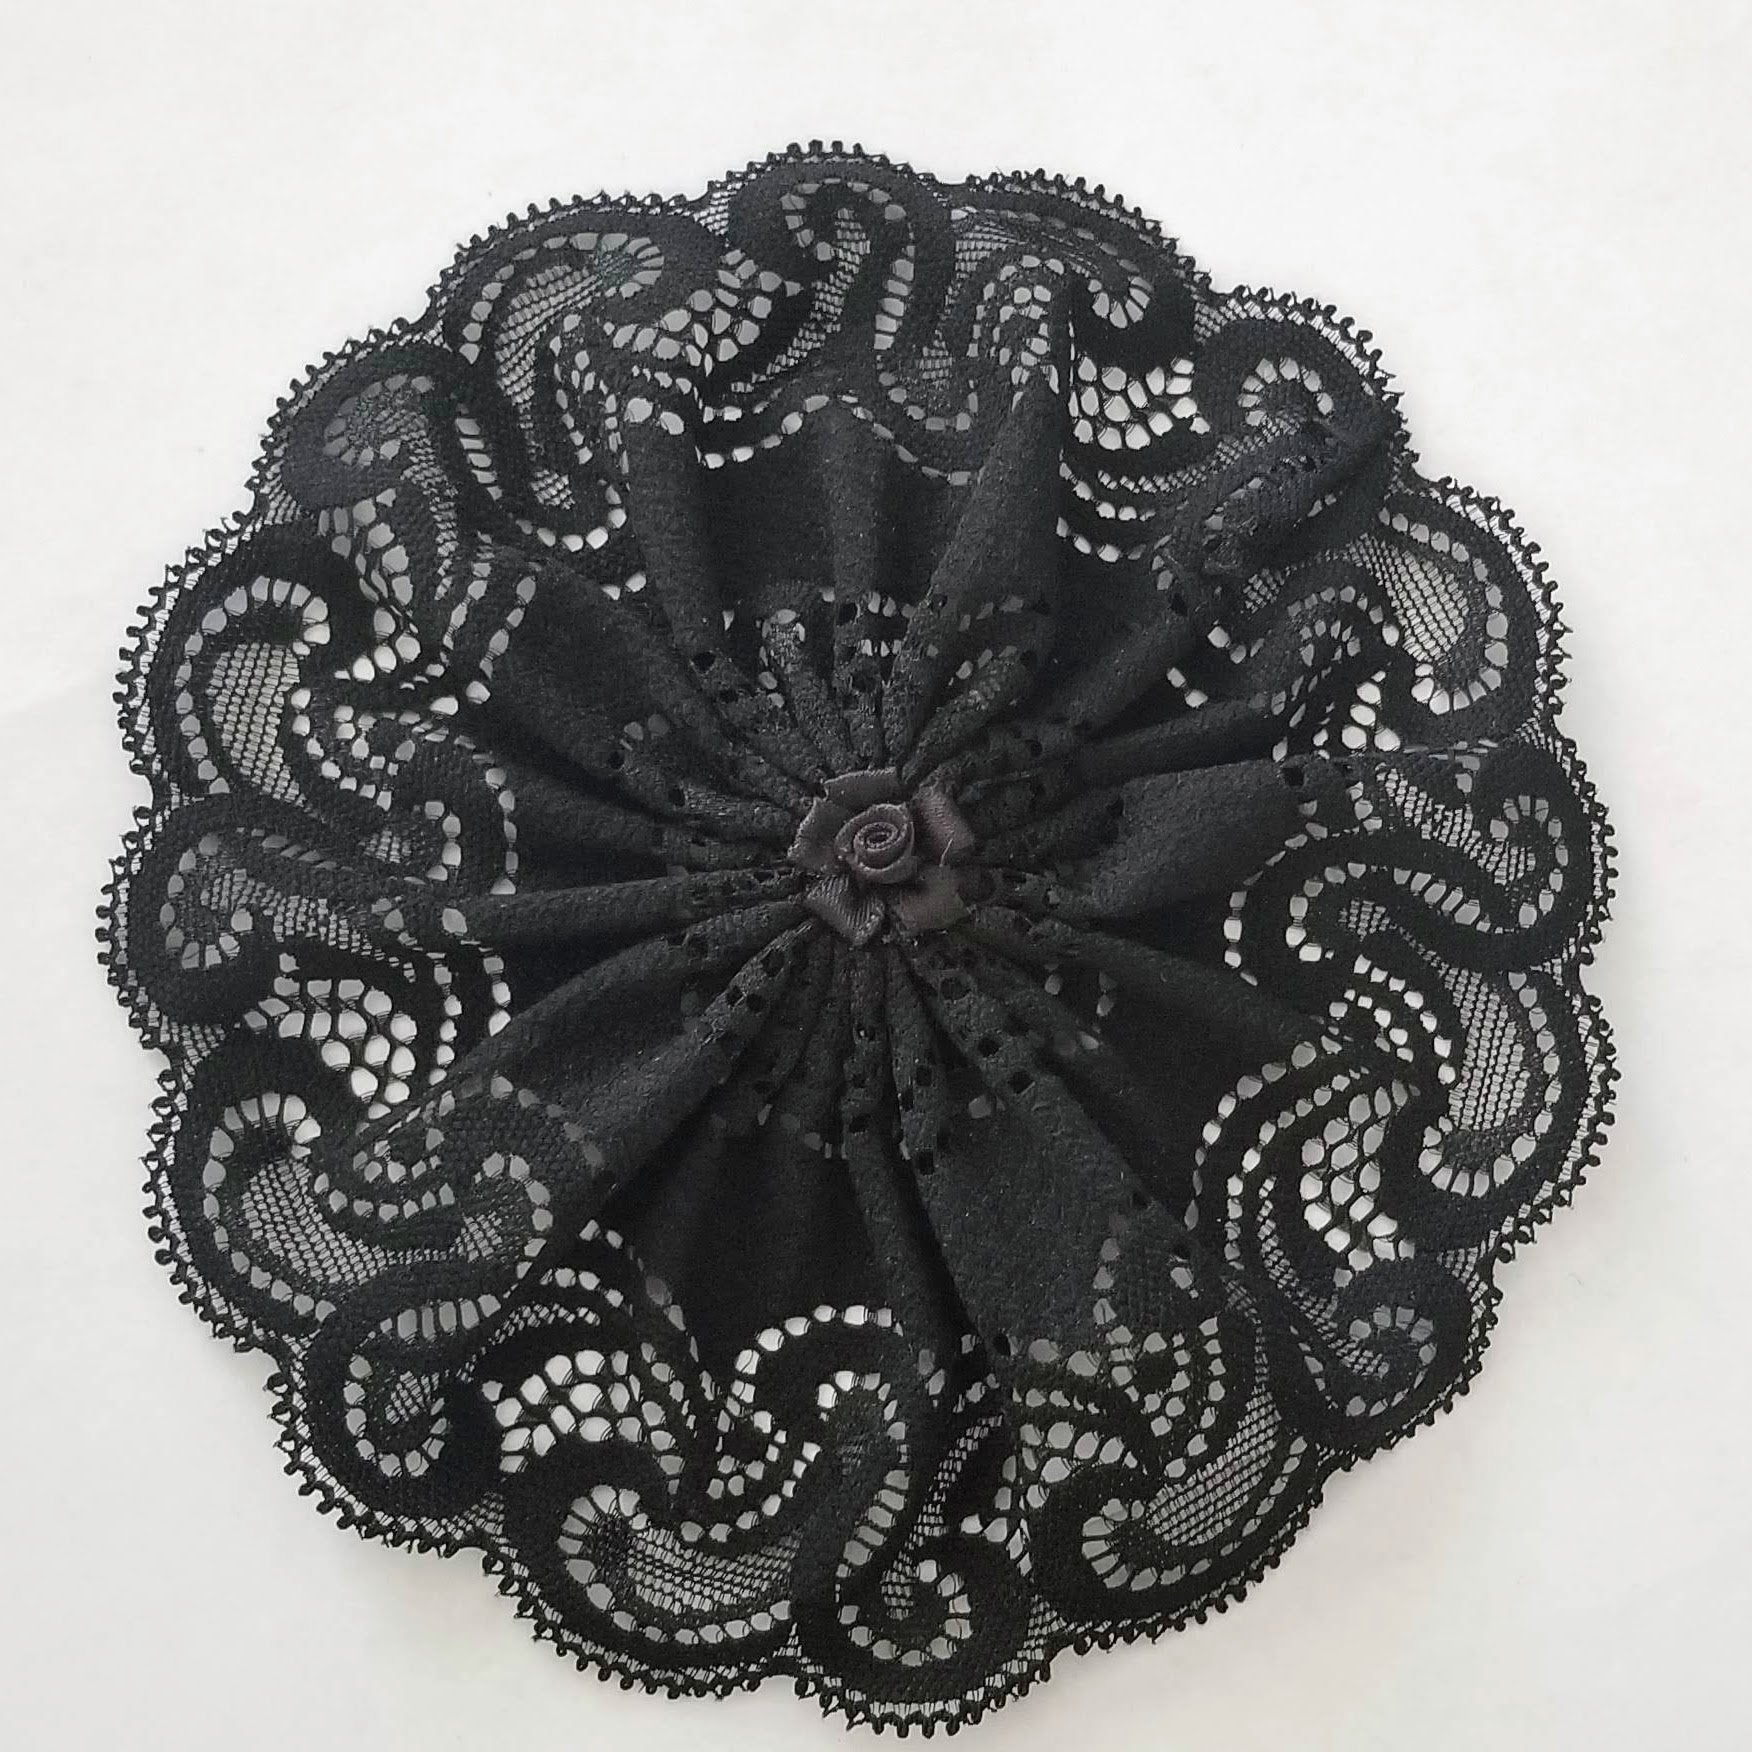 Black Lace Woman's Kippah